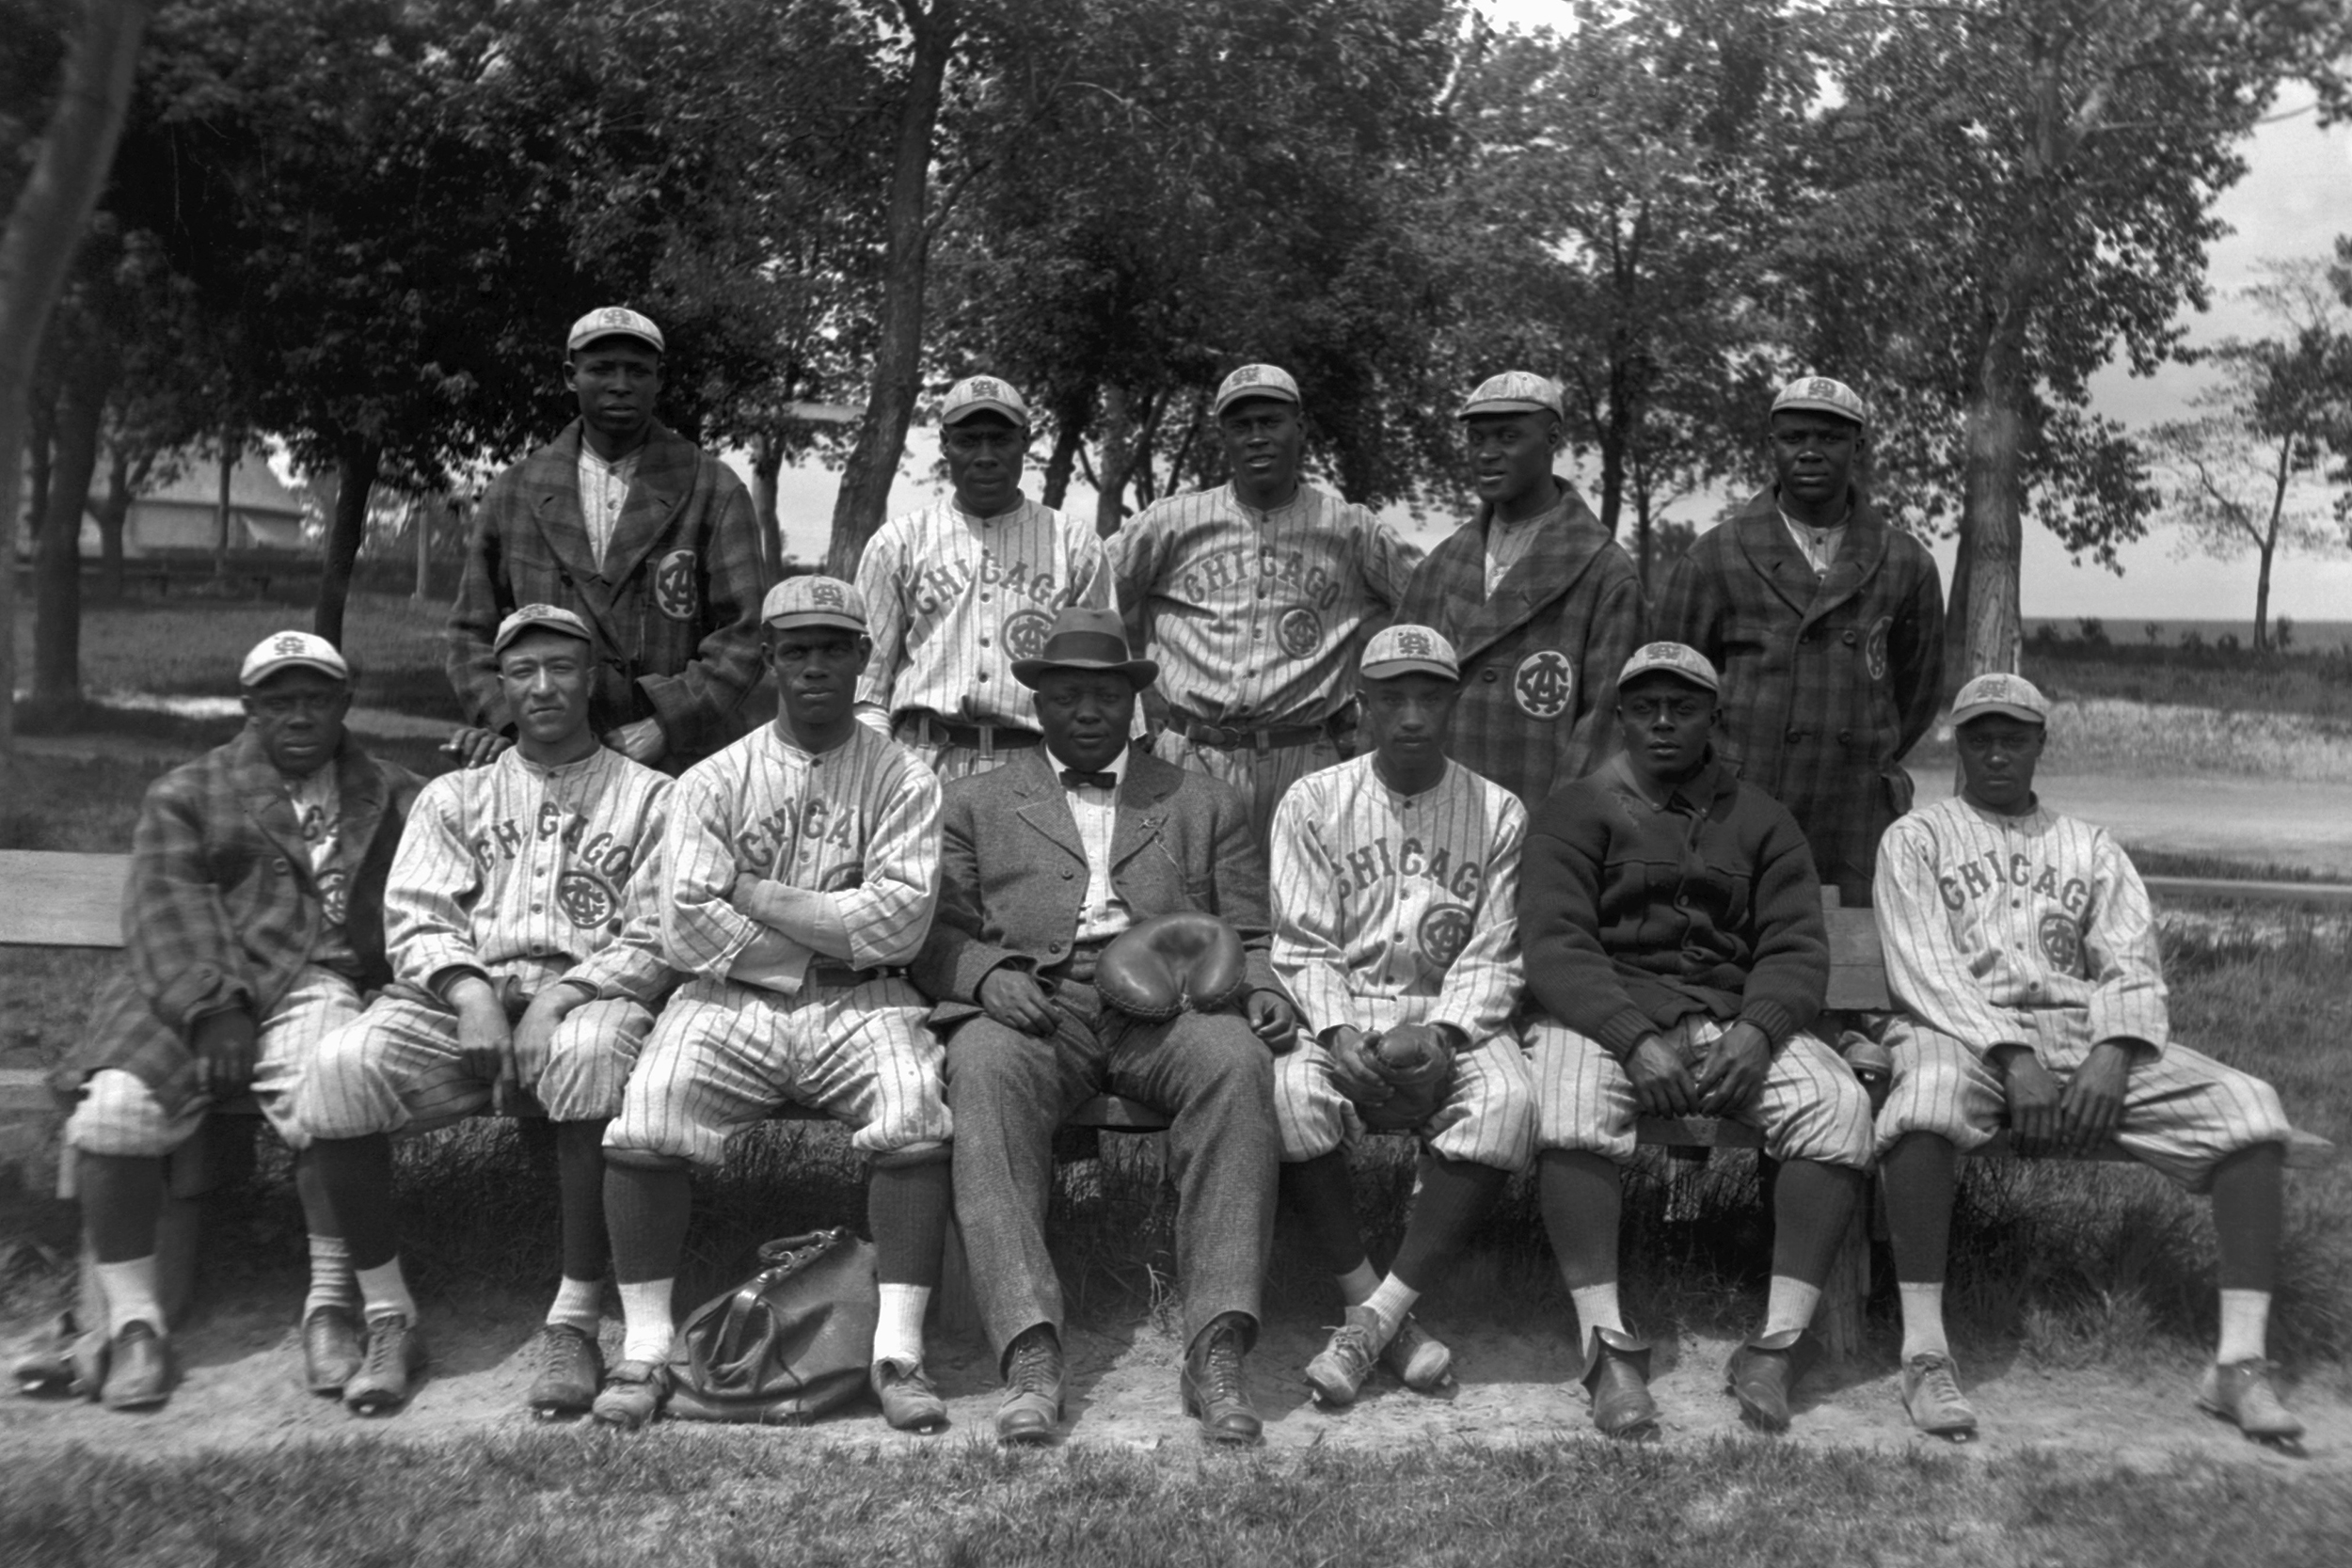 One hundred years on: Remembering the forgotten Black heroes of baseball